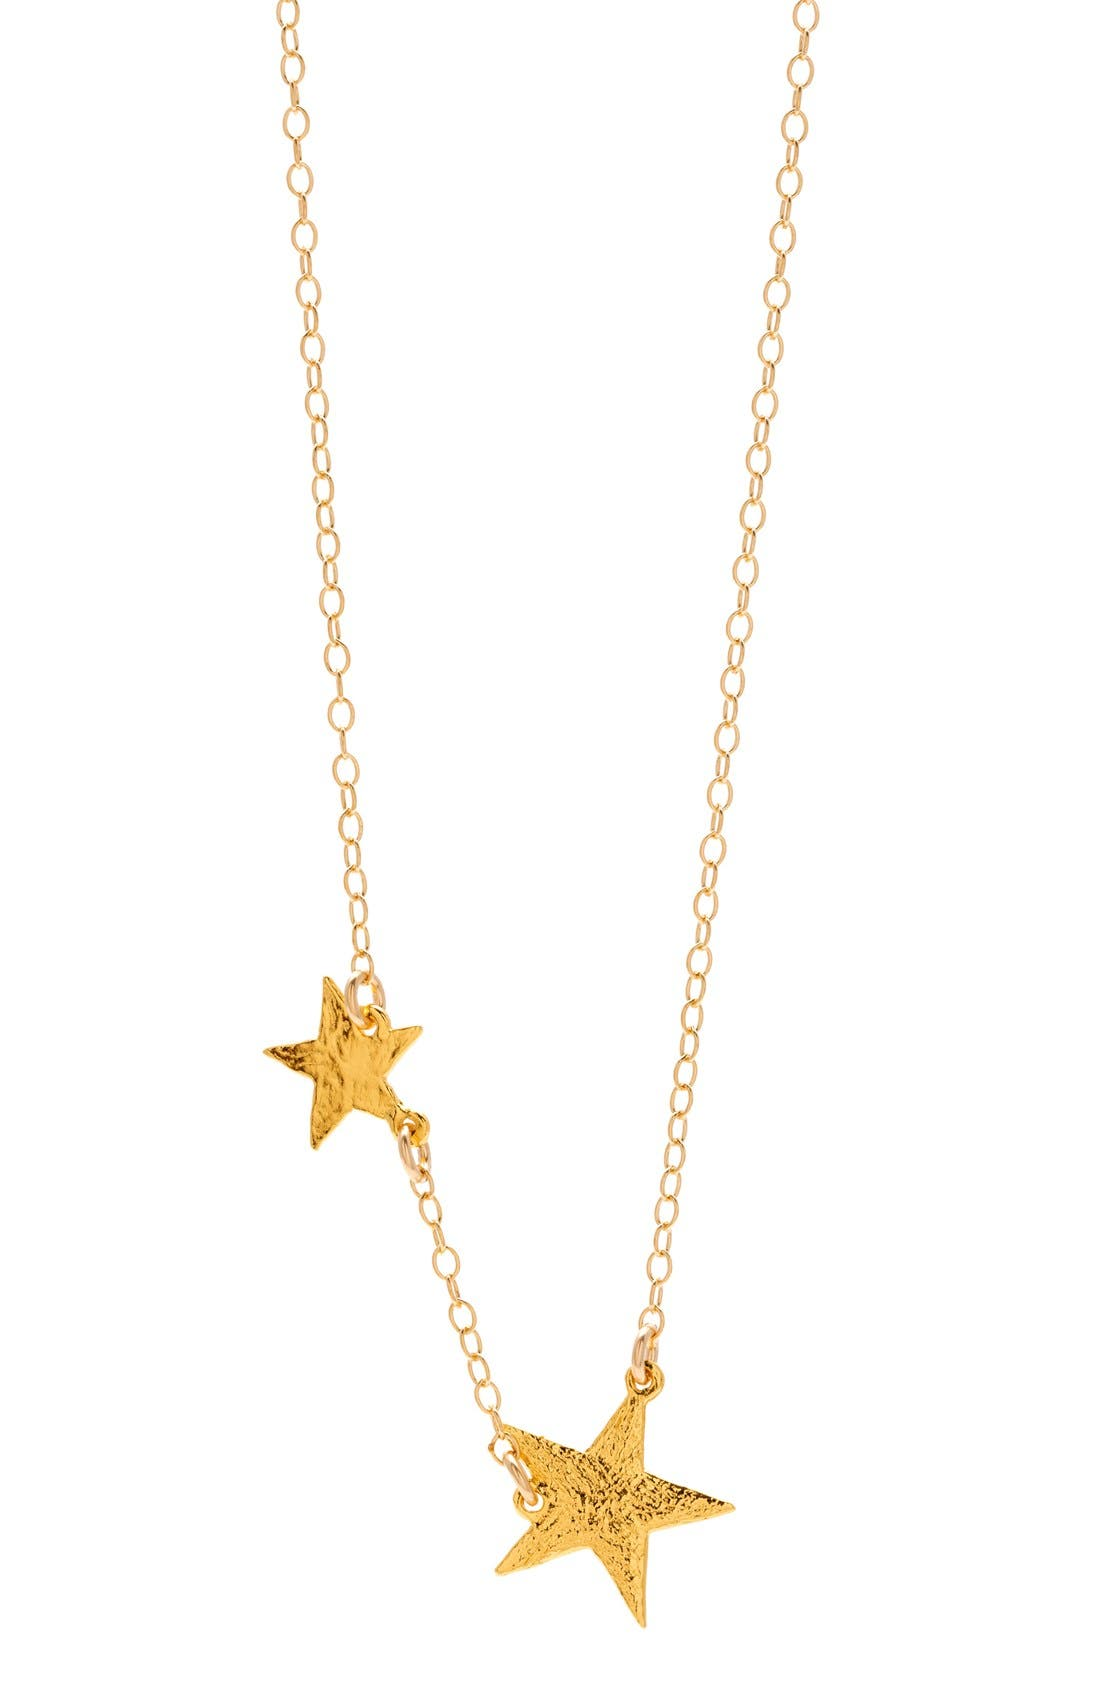 Star Pendant Necklace,                             Main thumbnail 1, color,                             Gold